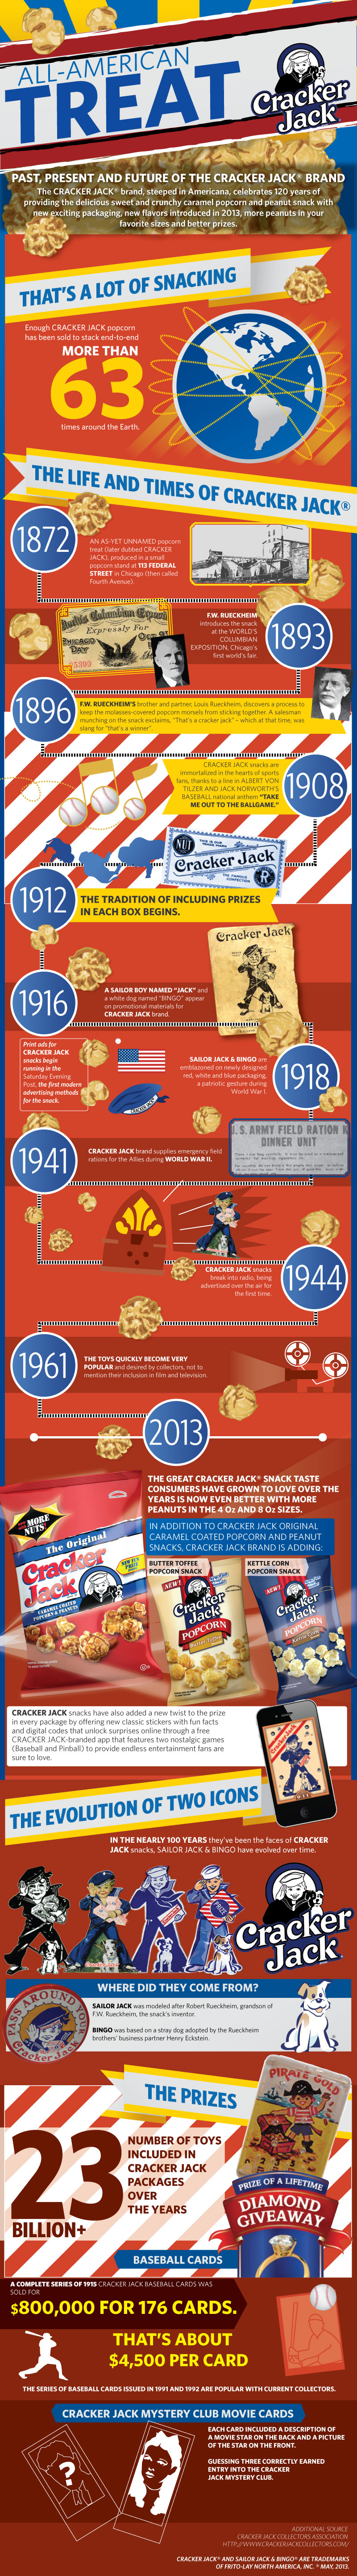 CrackerJack_Inforgraphic_2013.jpg